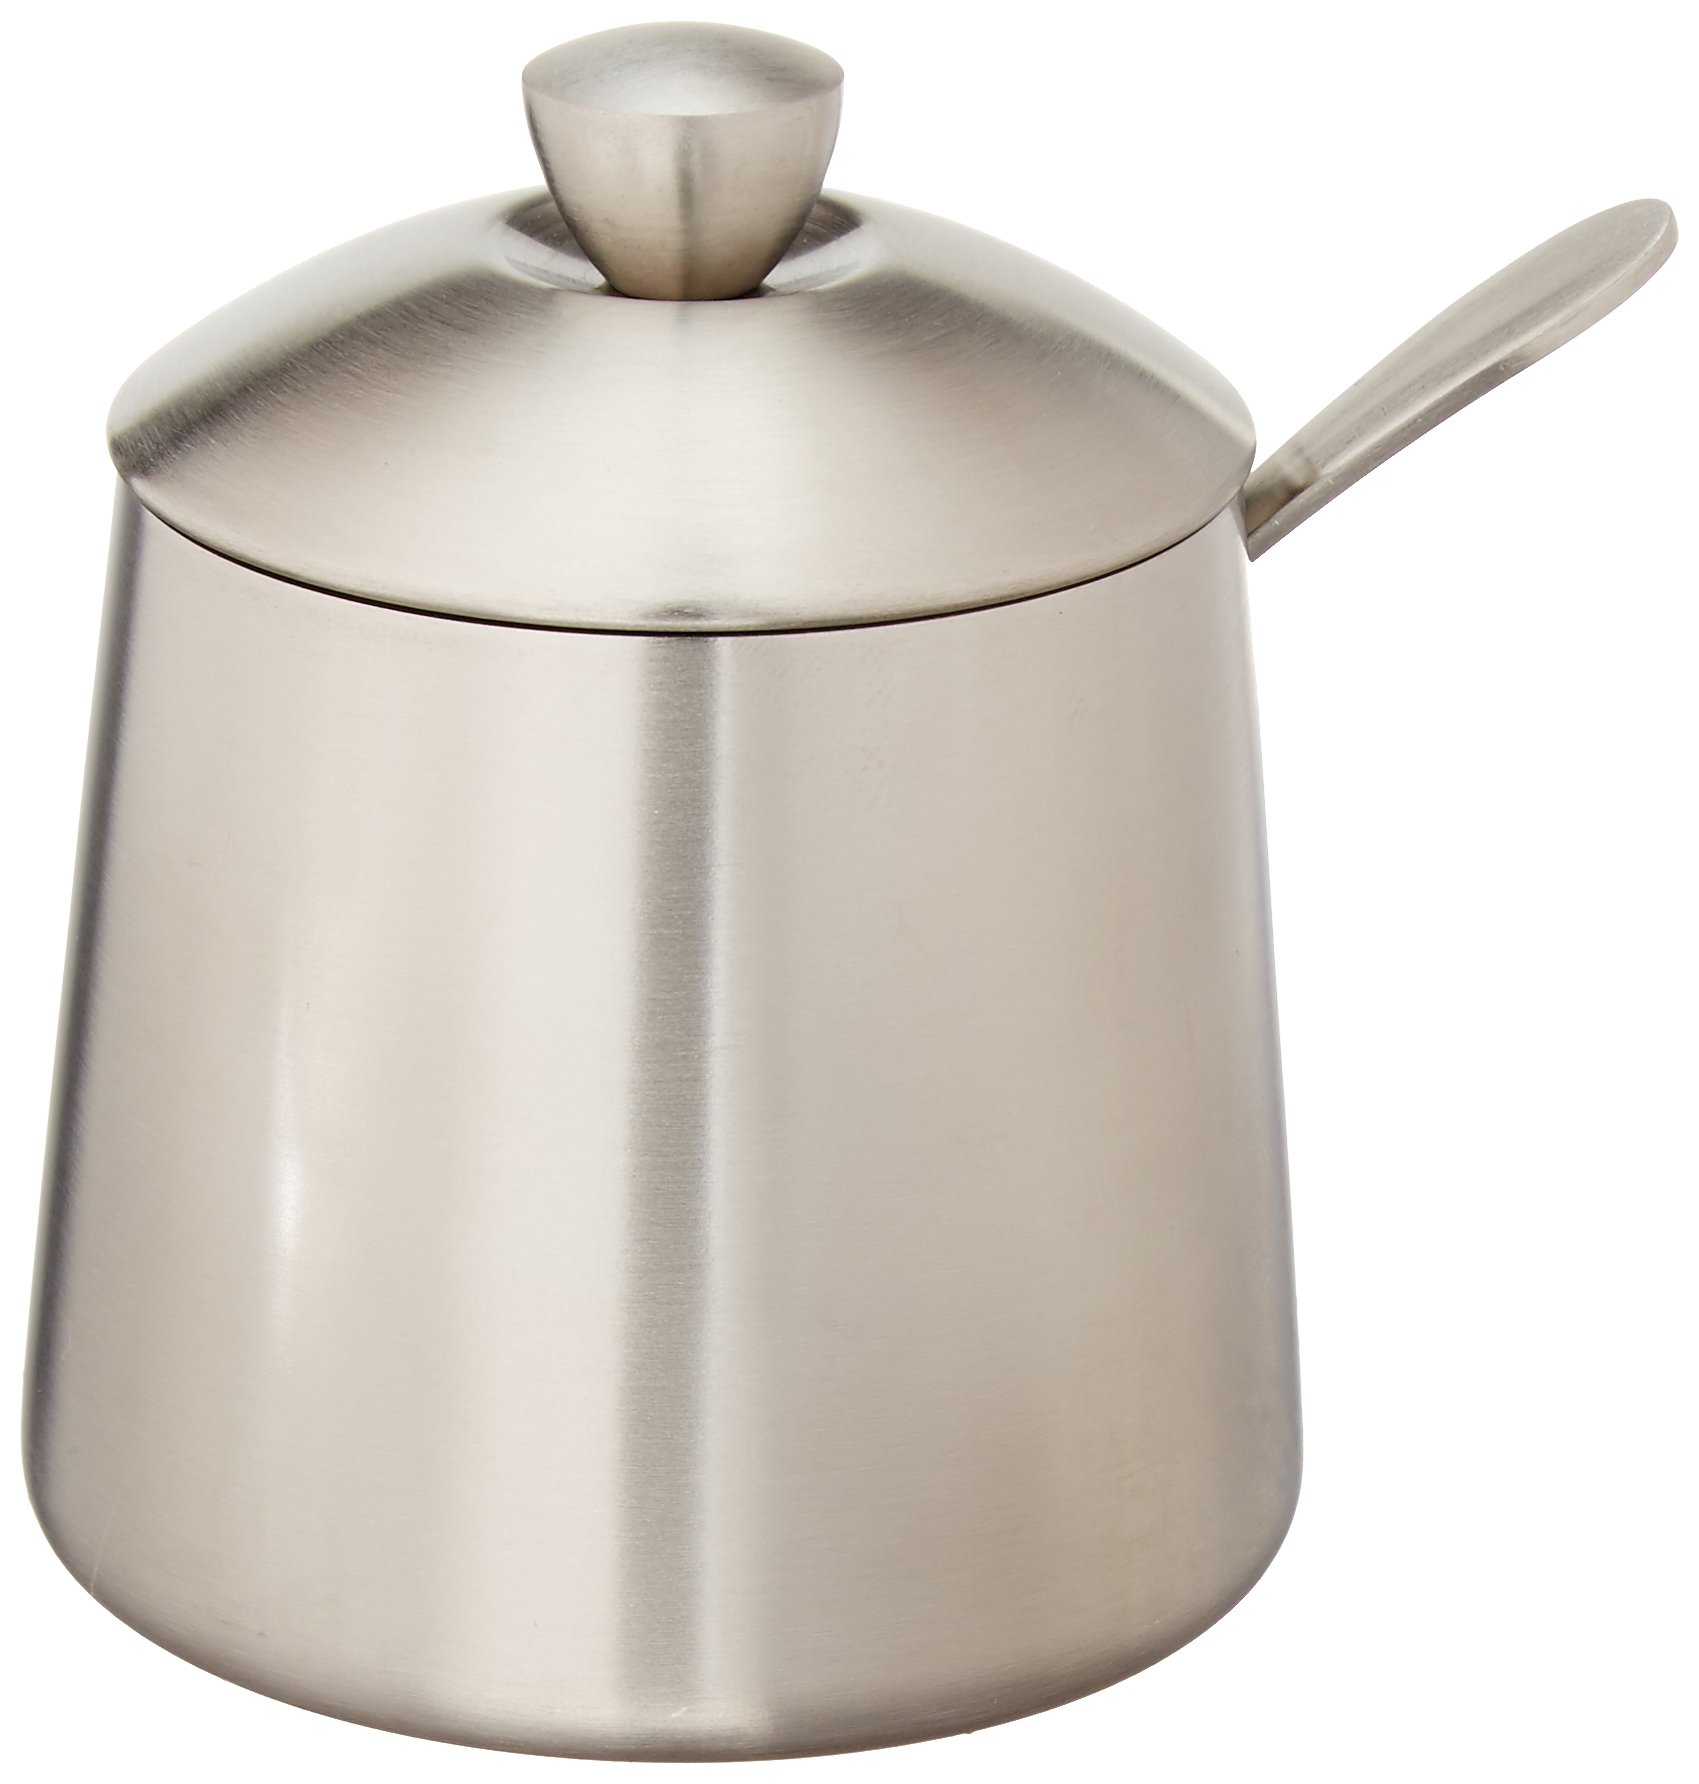 Frieling USA 18/10 Brushed Stainless Steel Sugar Bowl with Spoon